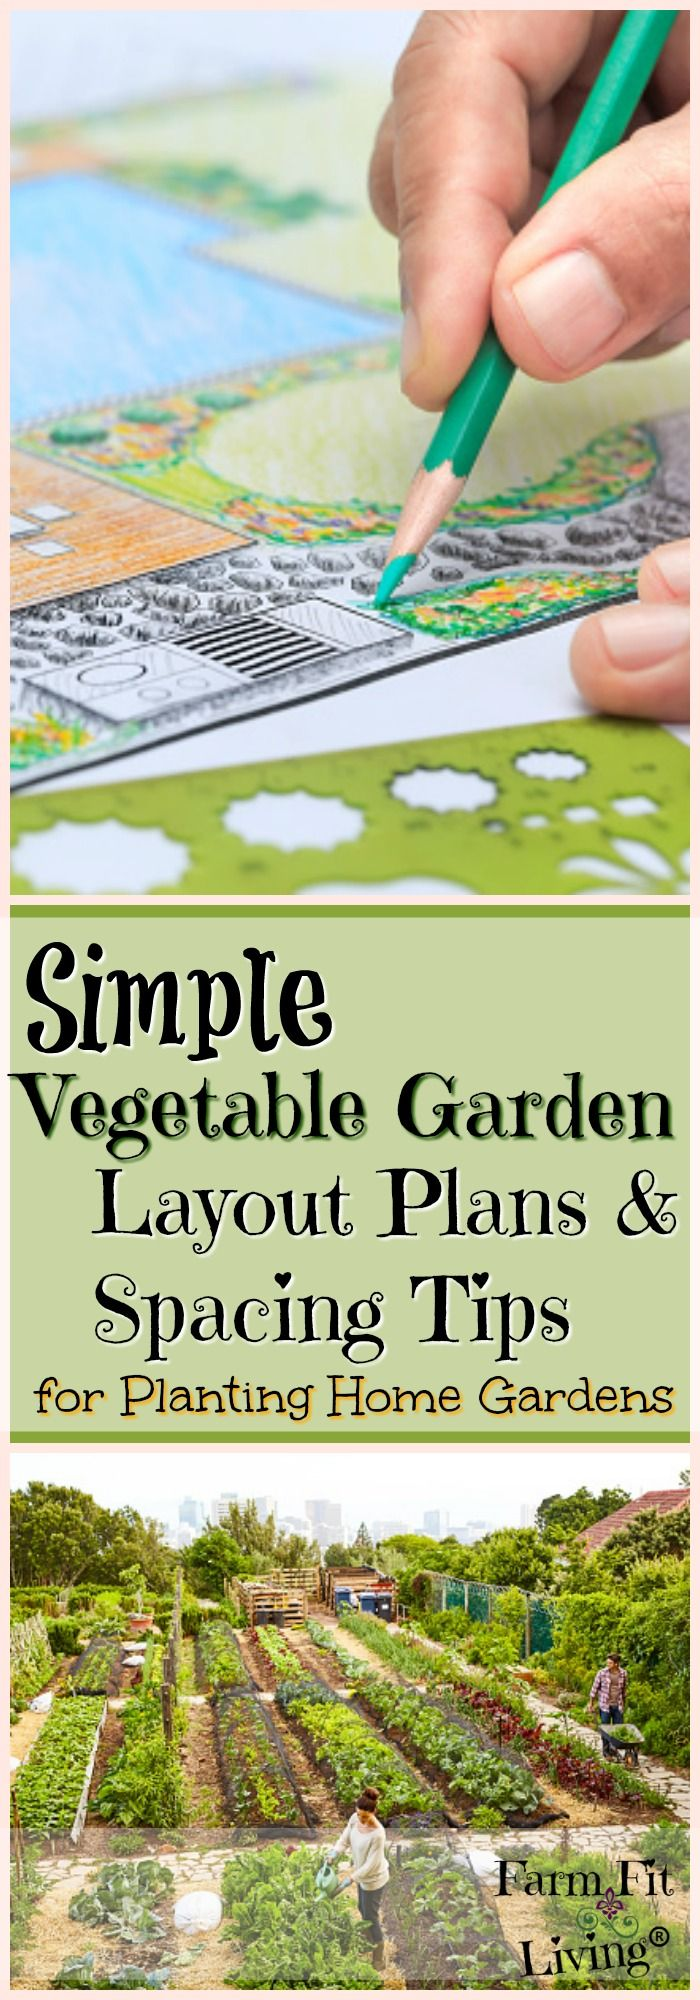 simple vegetable garden layout plans and spacing tips for home gardens - Home Vegetable Garden Design